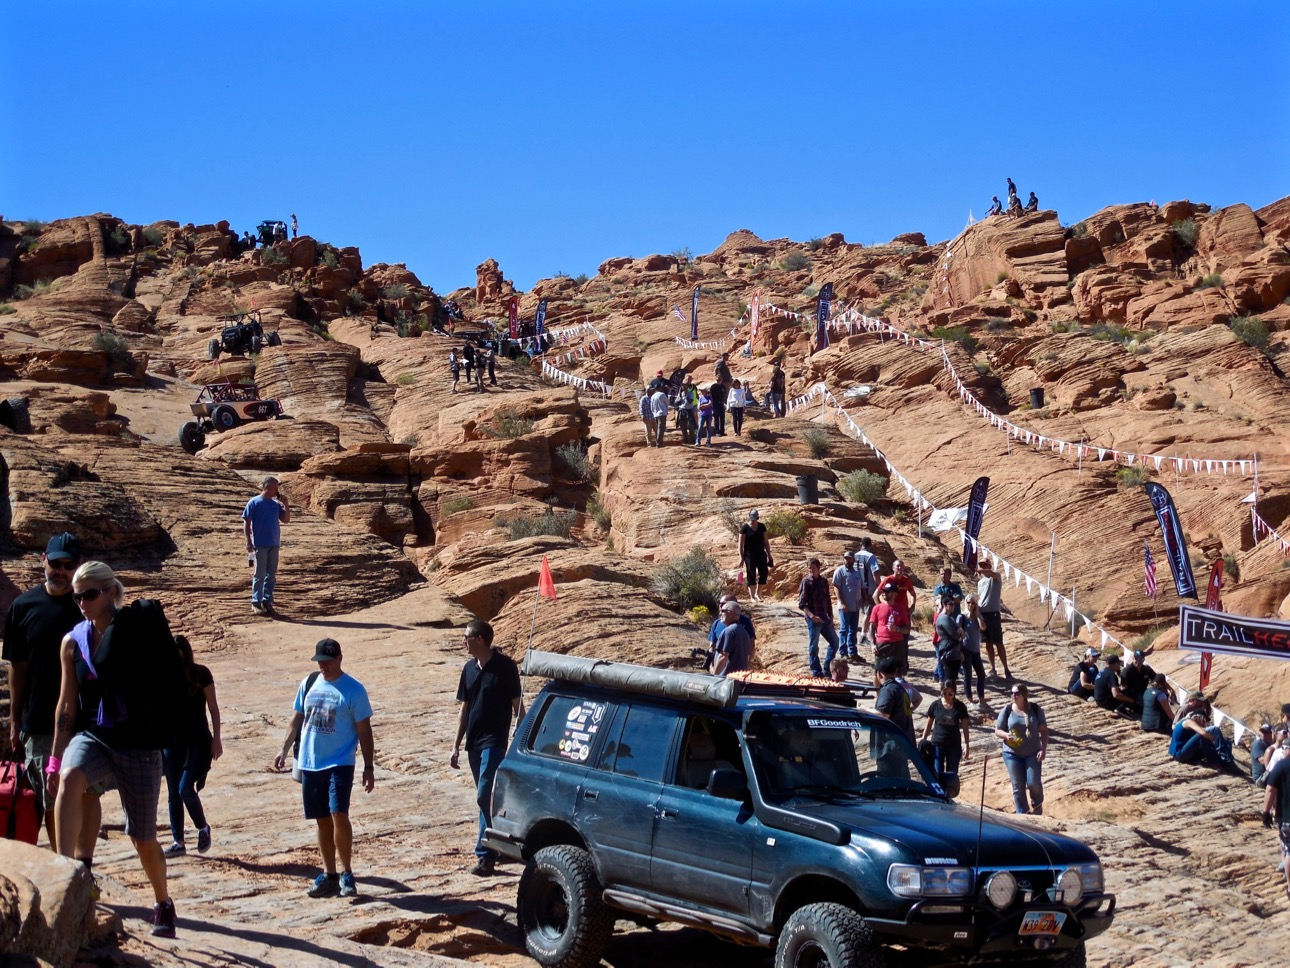 Spectators and participants enjoy the Trail Hero event, Sand Mountain, Hurricane, Utah, Oct. 6, 2016 | Photo by Julie Applegate, St. George News